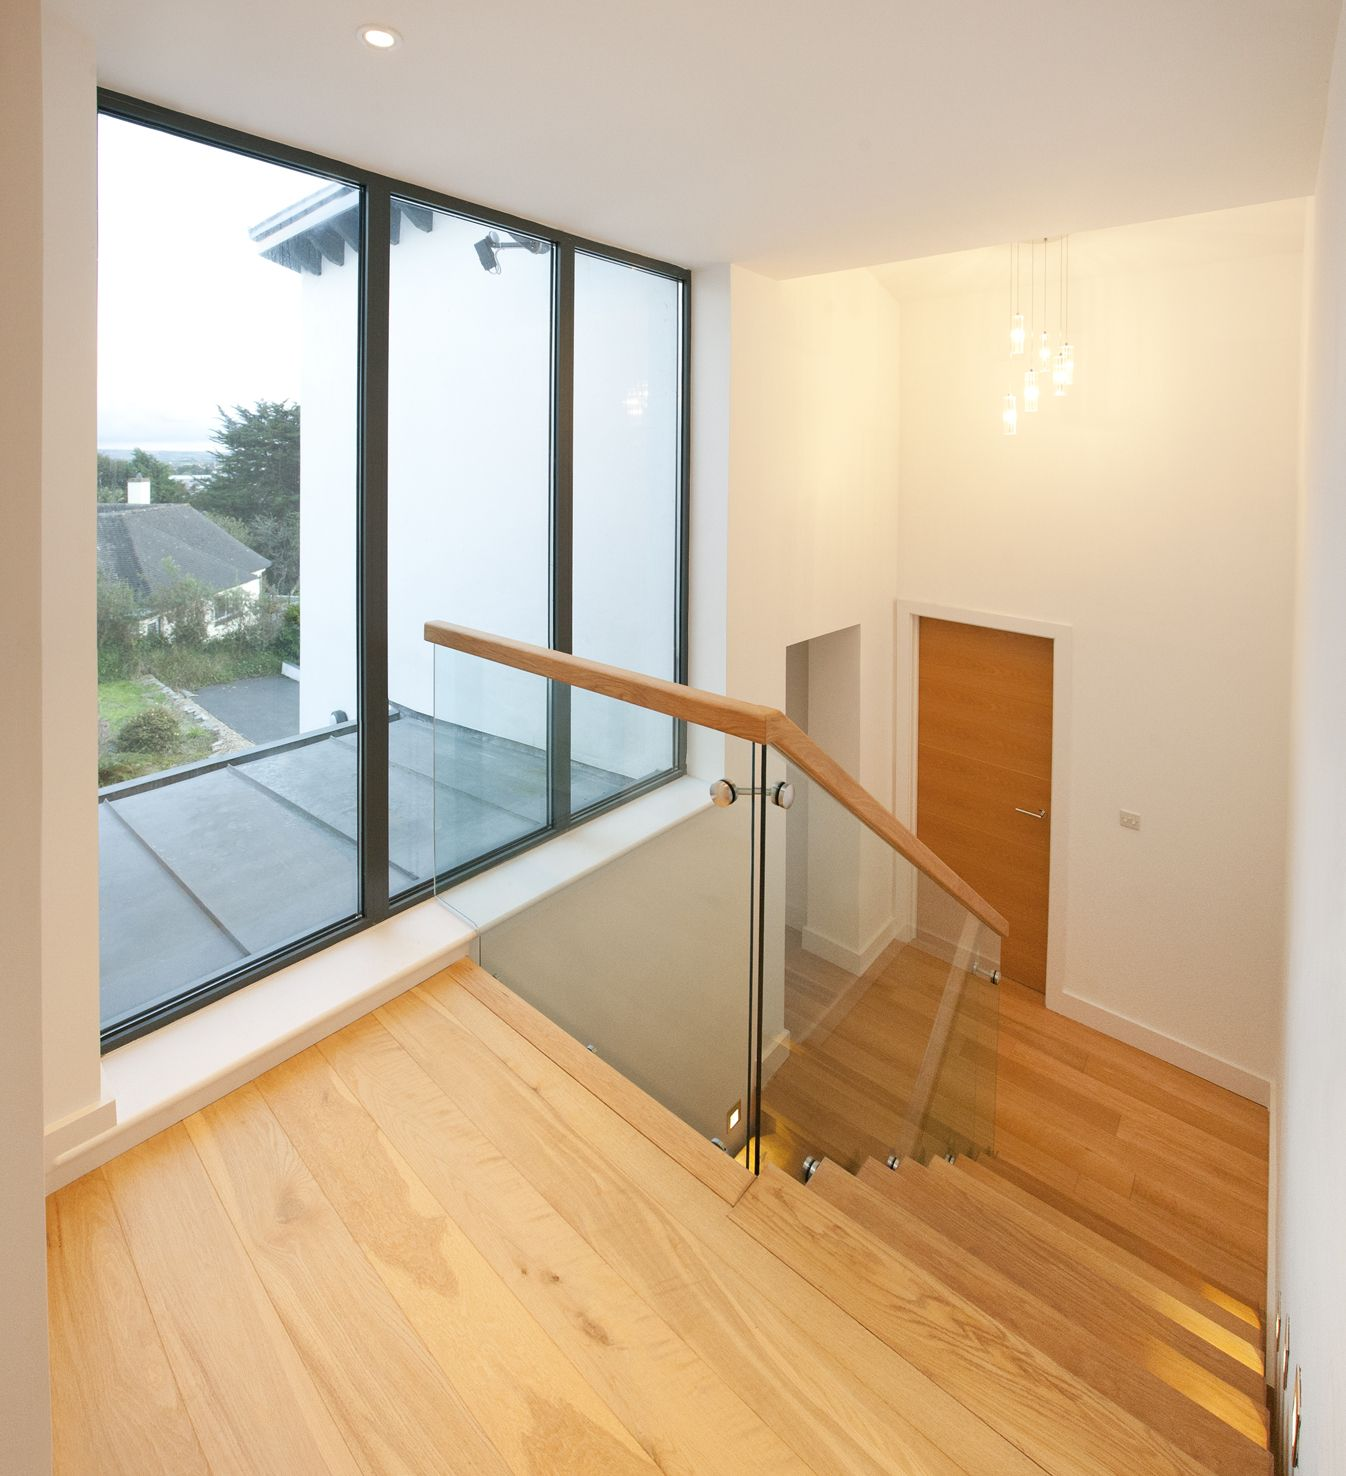 Best Trevanion Cornwall Split Level Staircase Glazed Balustrade Glass And Wood Stairs Photography 400 x 300